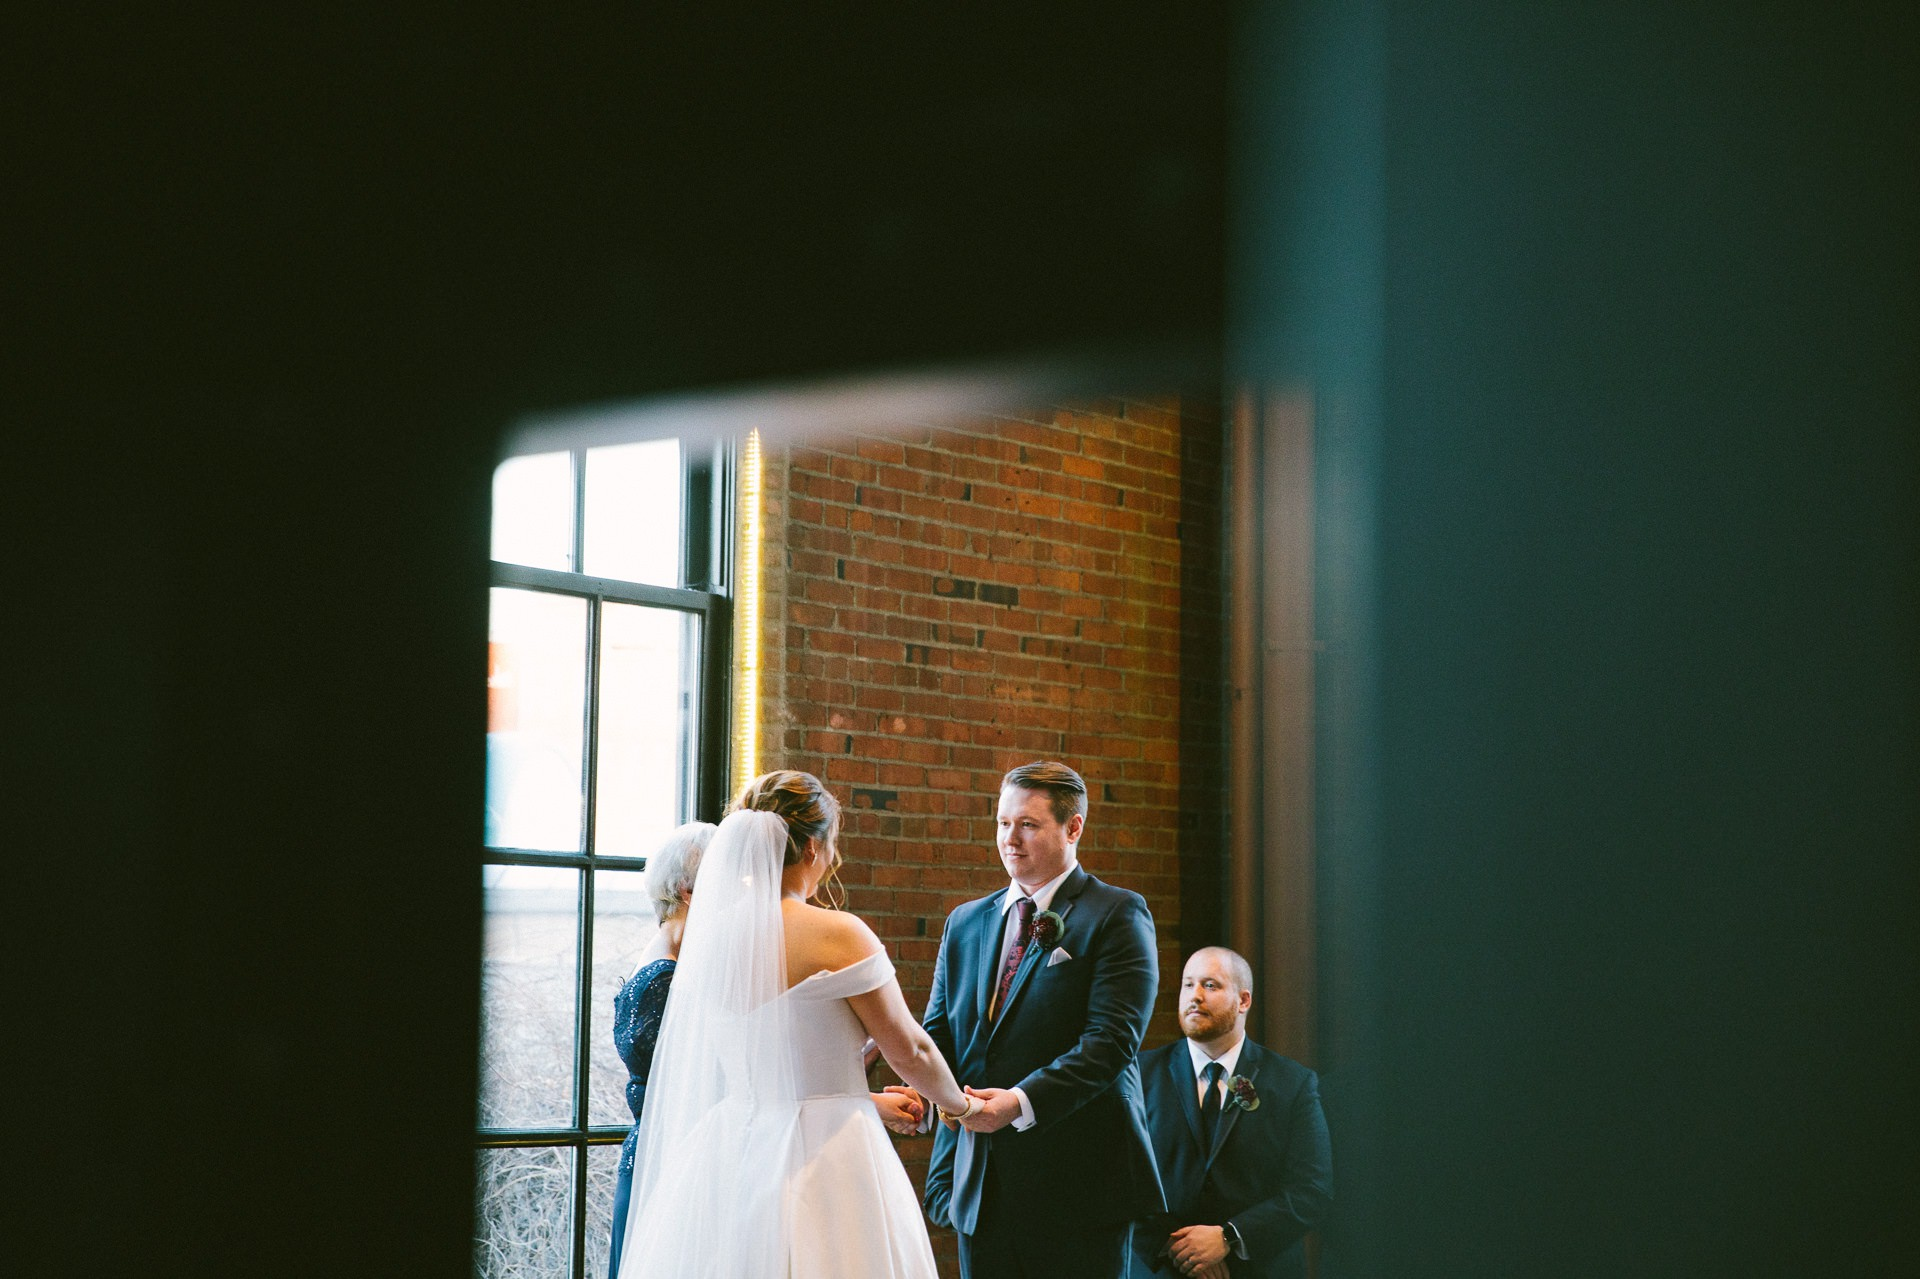 Windows on the RIver Wedding Photographer in Cleveland 2 18.jpg